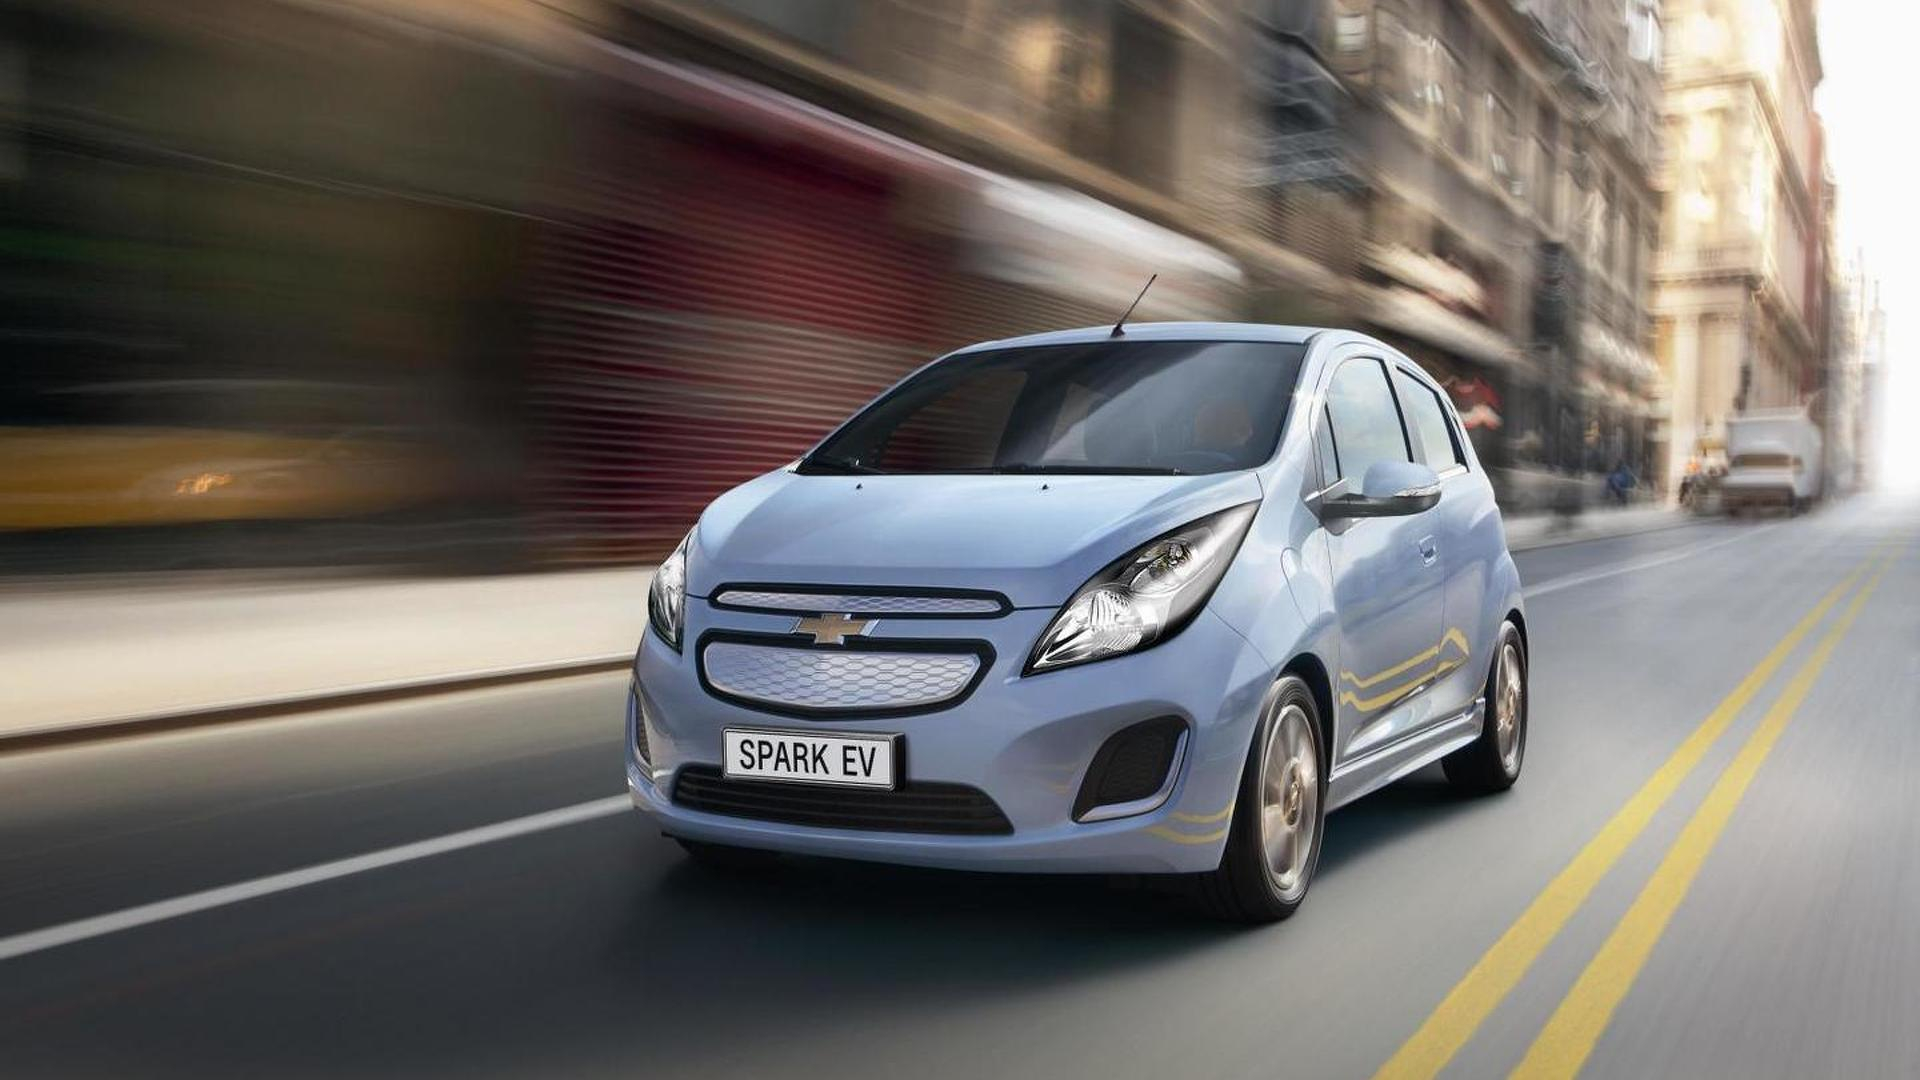 Gm Confirms Mive Weight Reductions Development Of Ev With Up To 200 Mile Range